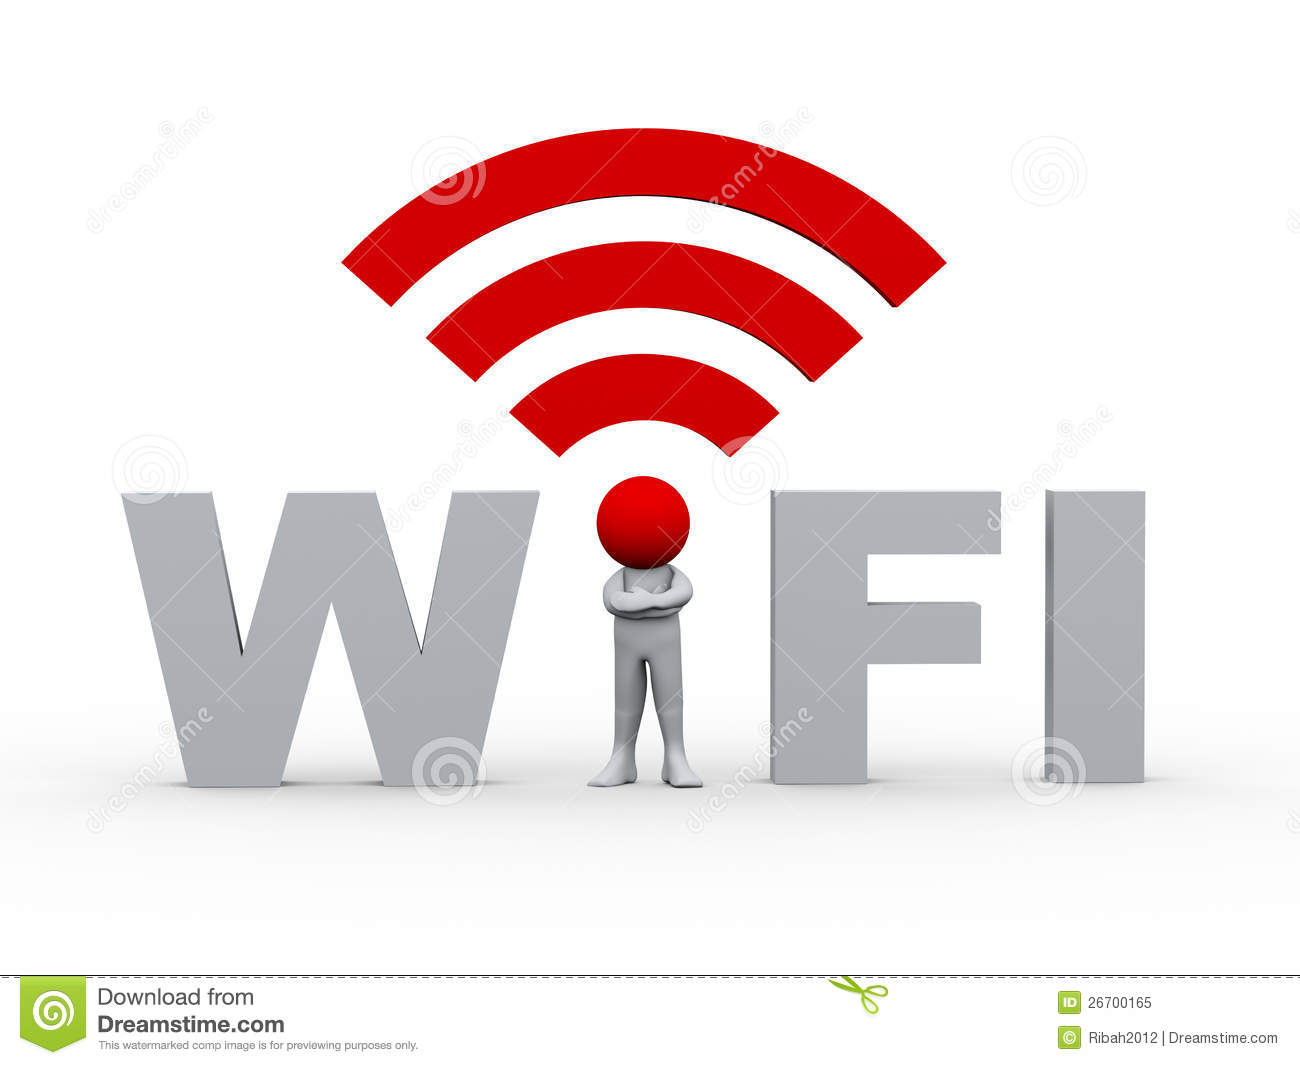 Hotspot With Unlimited Data >> 3d man in the wifi stock illustration. Illustration of hotspot - 26700165